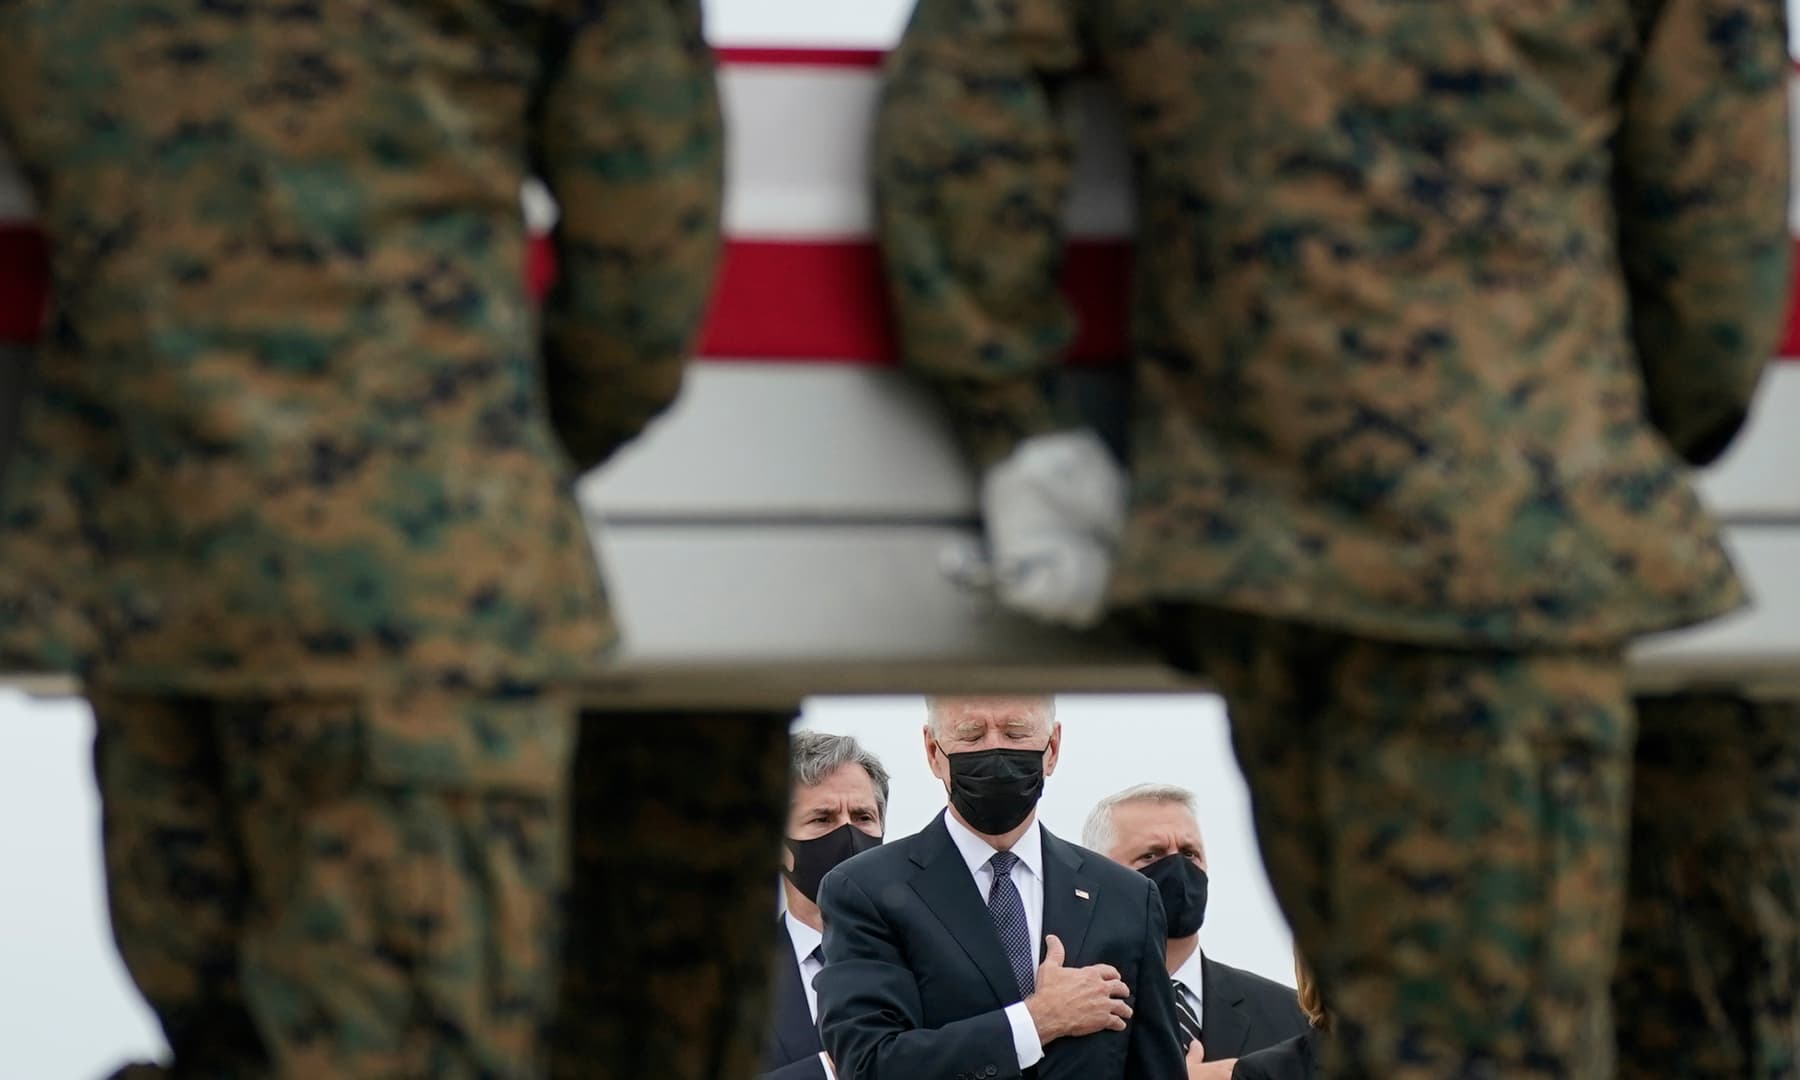 President Joe Biden watches as a carry team moves a transfer case containing the remains of Marine Corps Lance Cpl Kareem M Nikoui, 20, of Norco, California, during a casualty return at Dover Air Force Base, Delaware, US on August 29, 2021. — AP